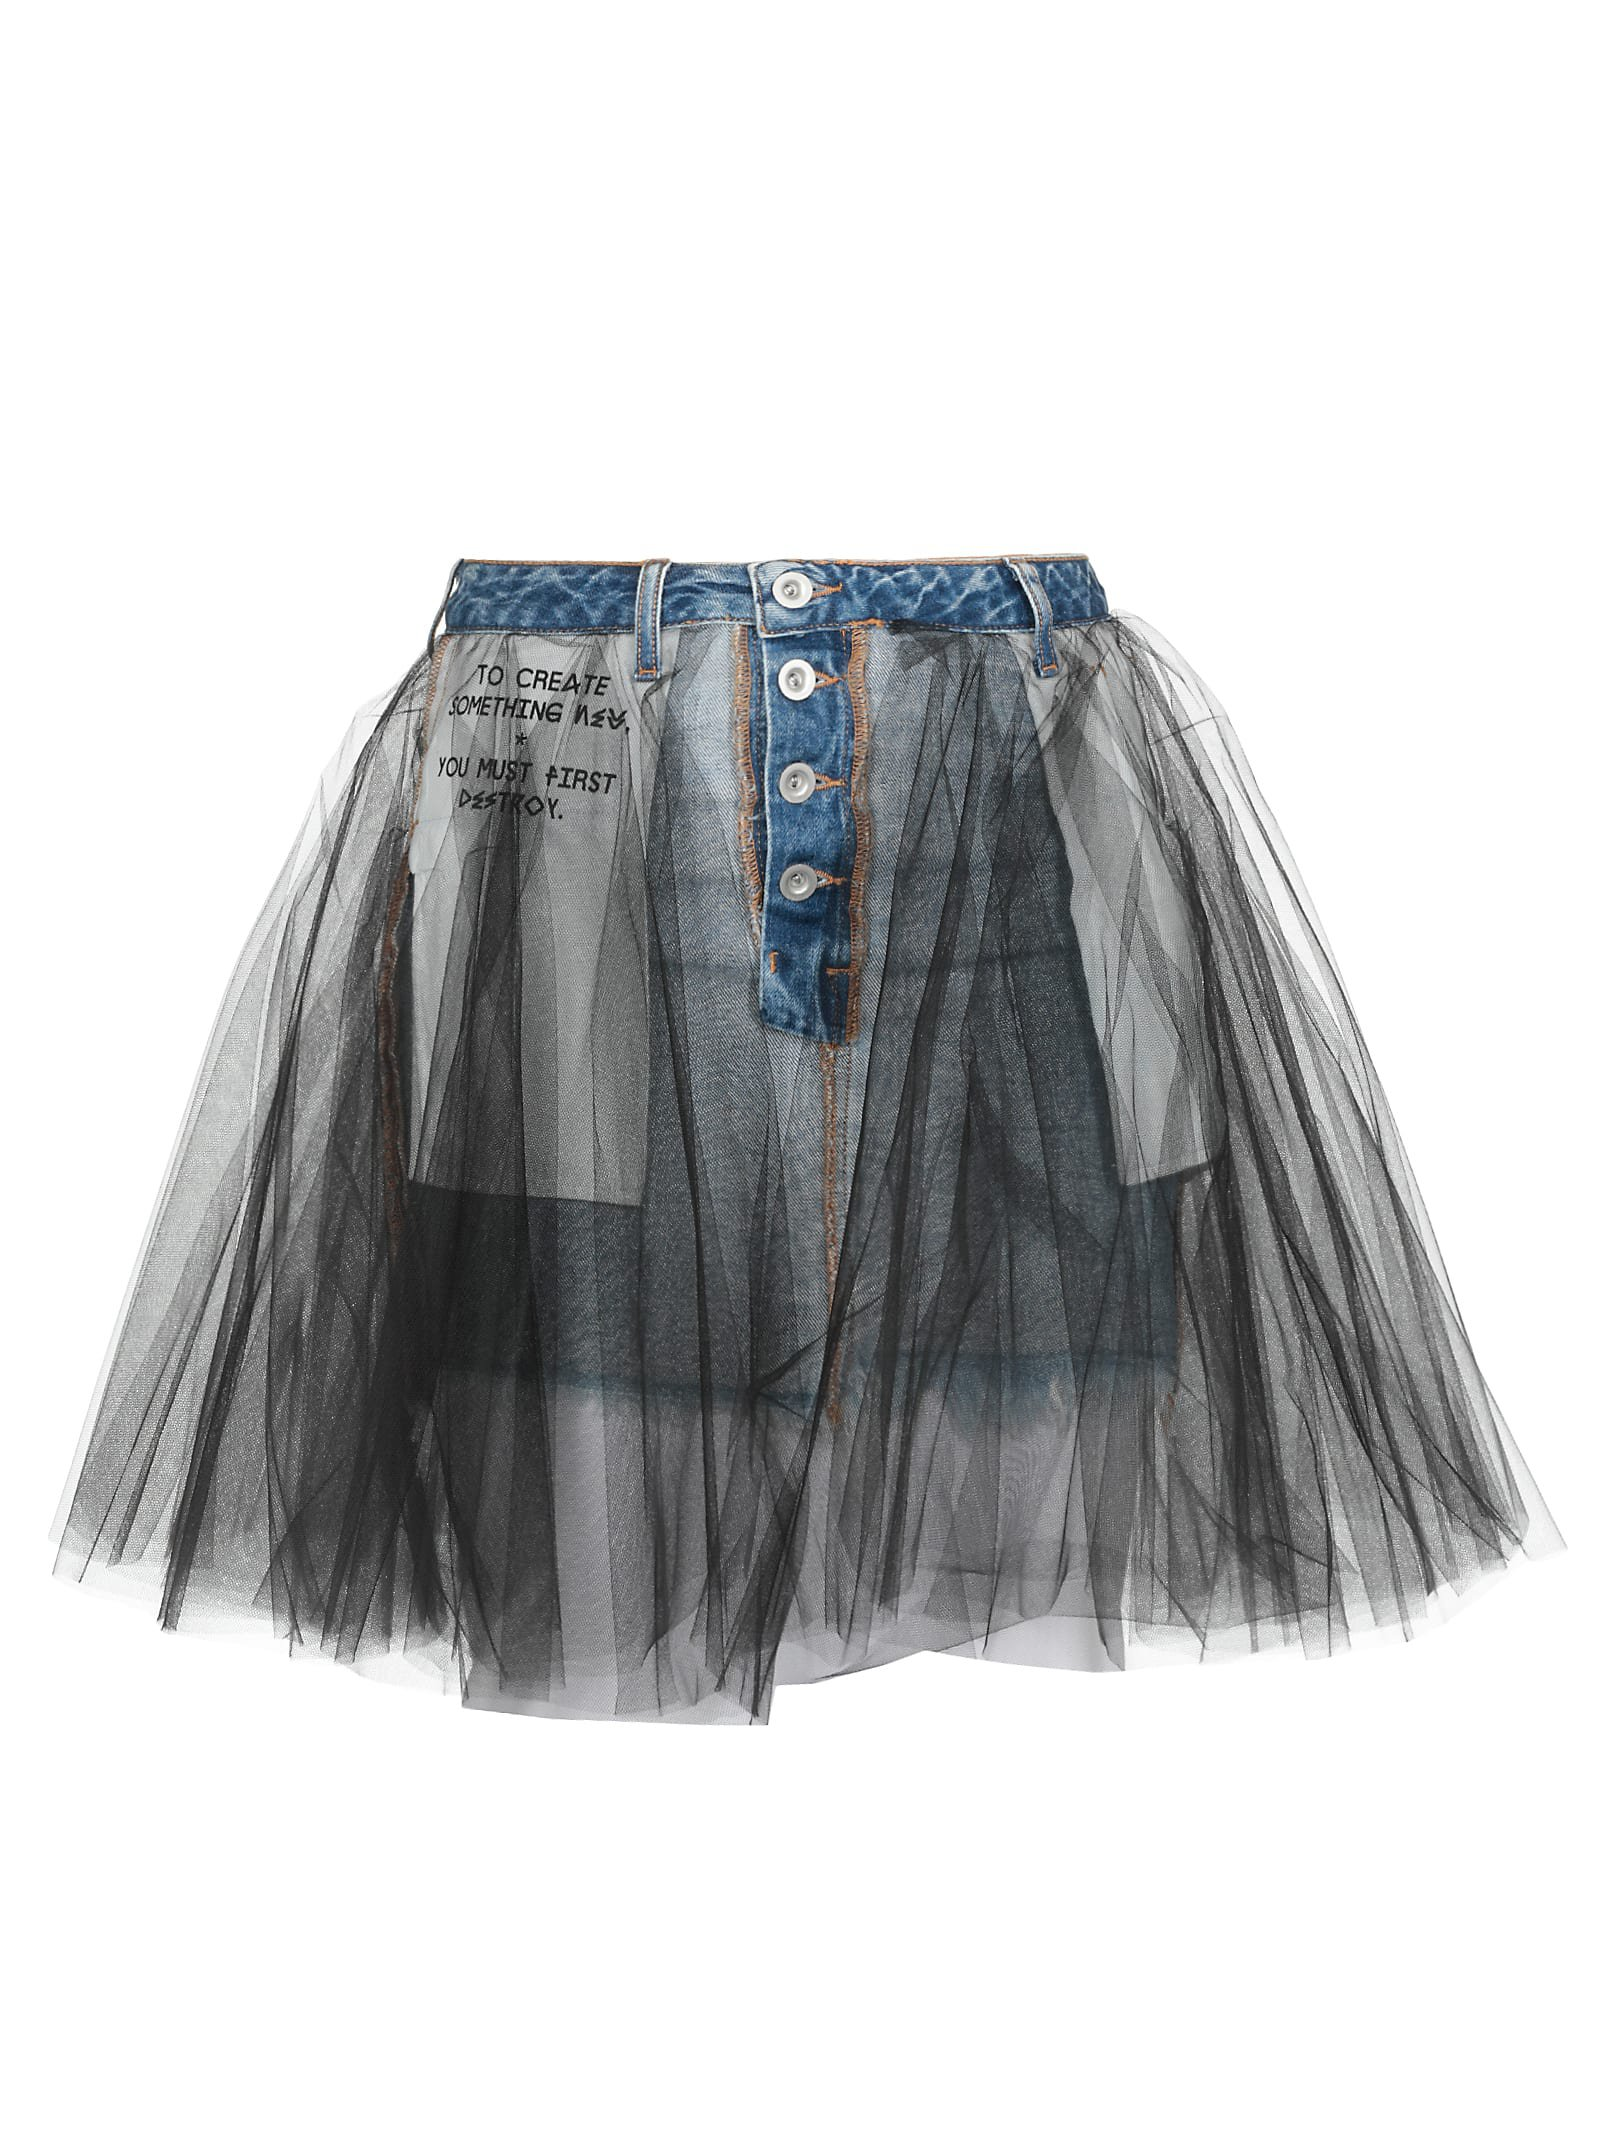 Ben Taverniti Unravel Project Mini Skirt